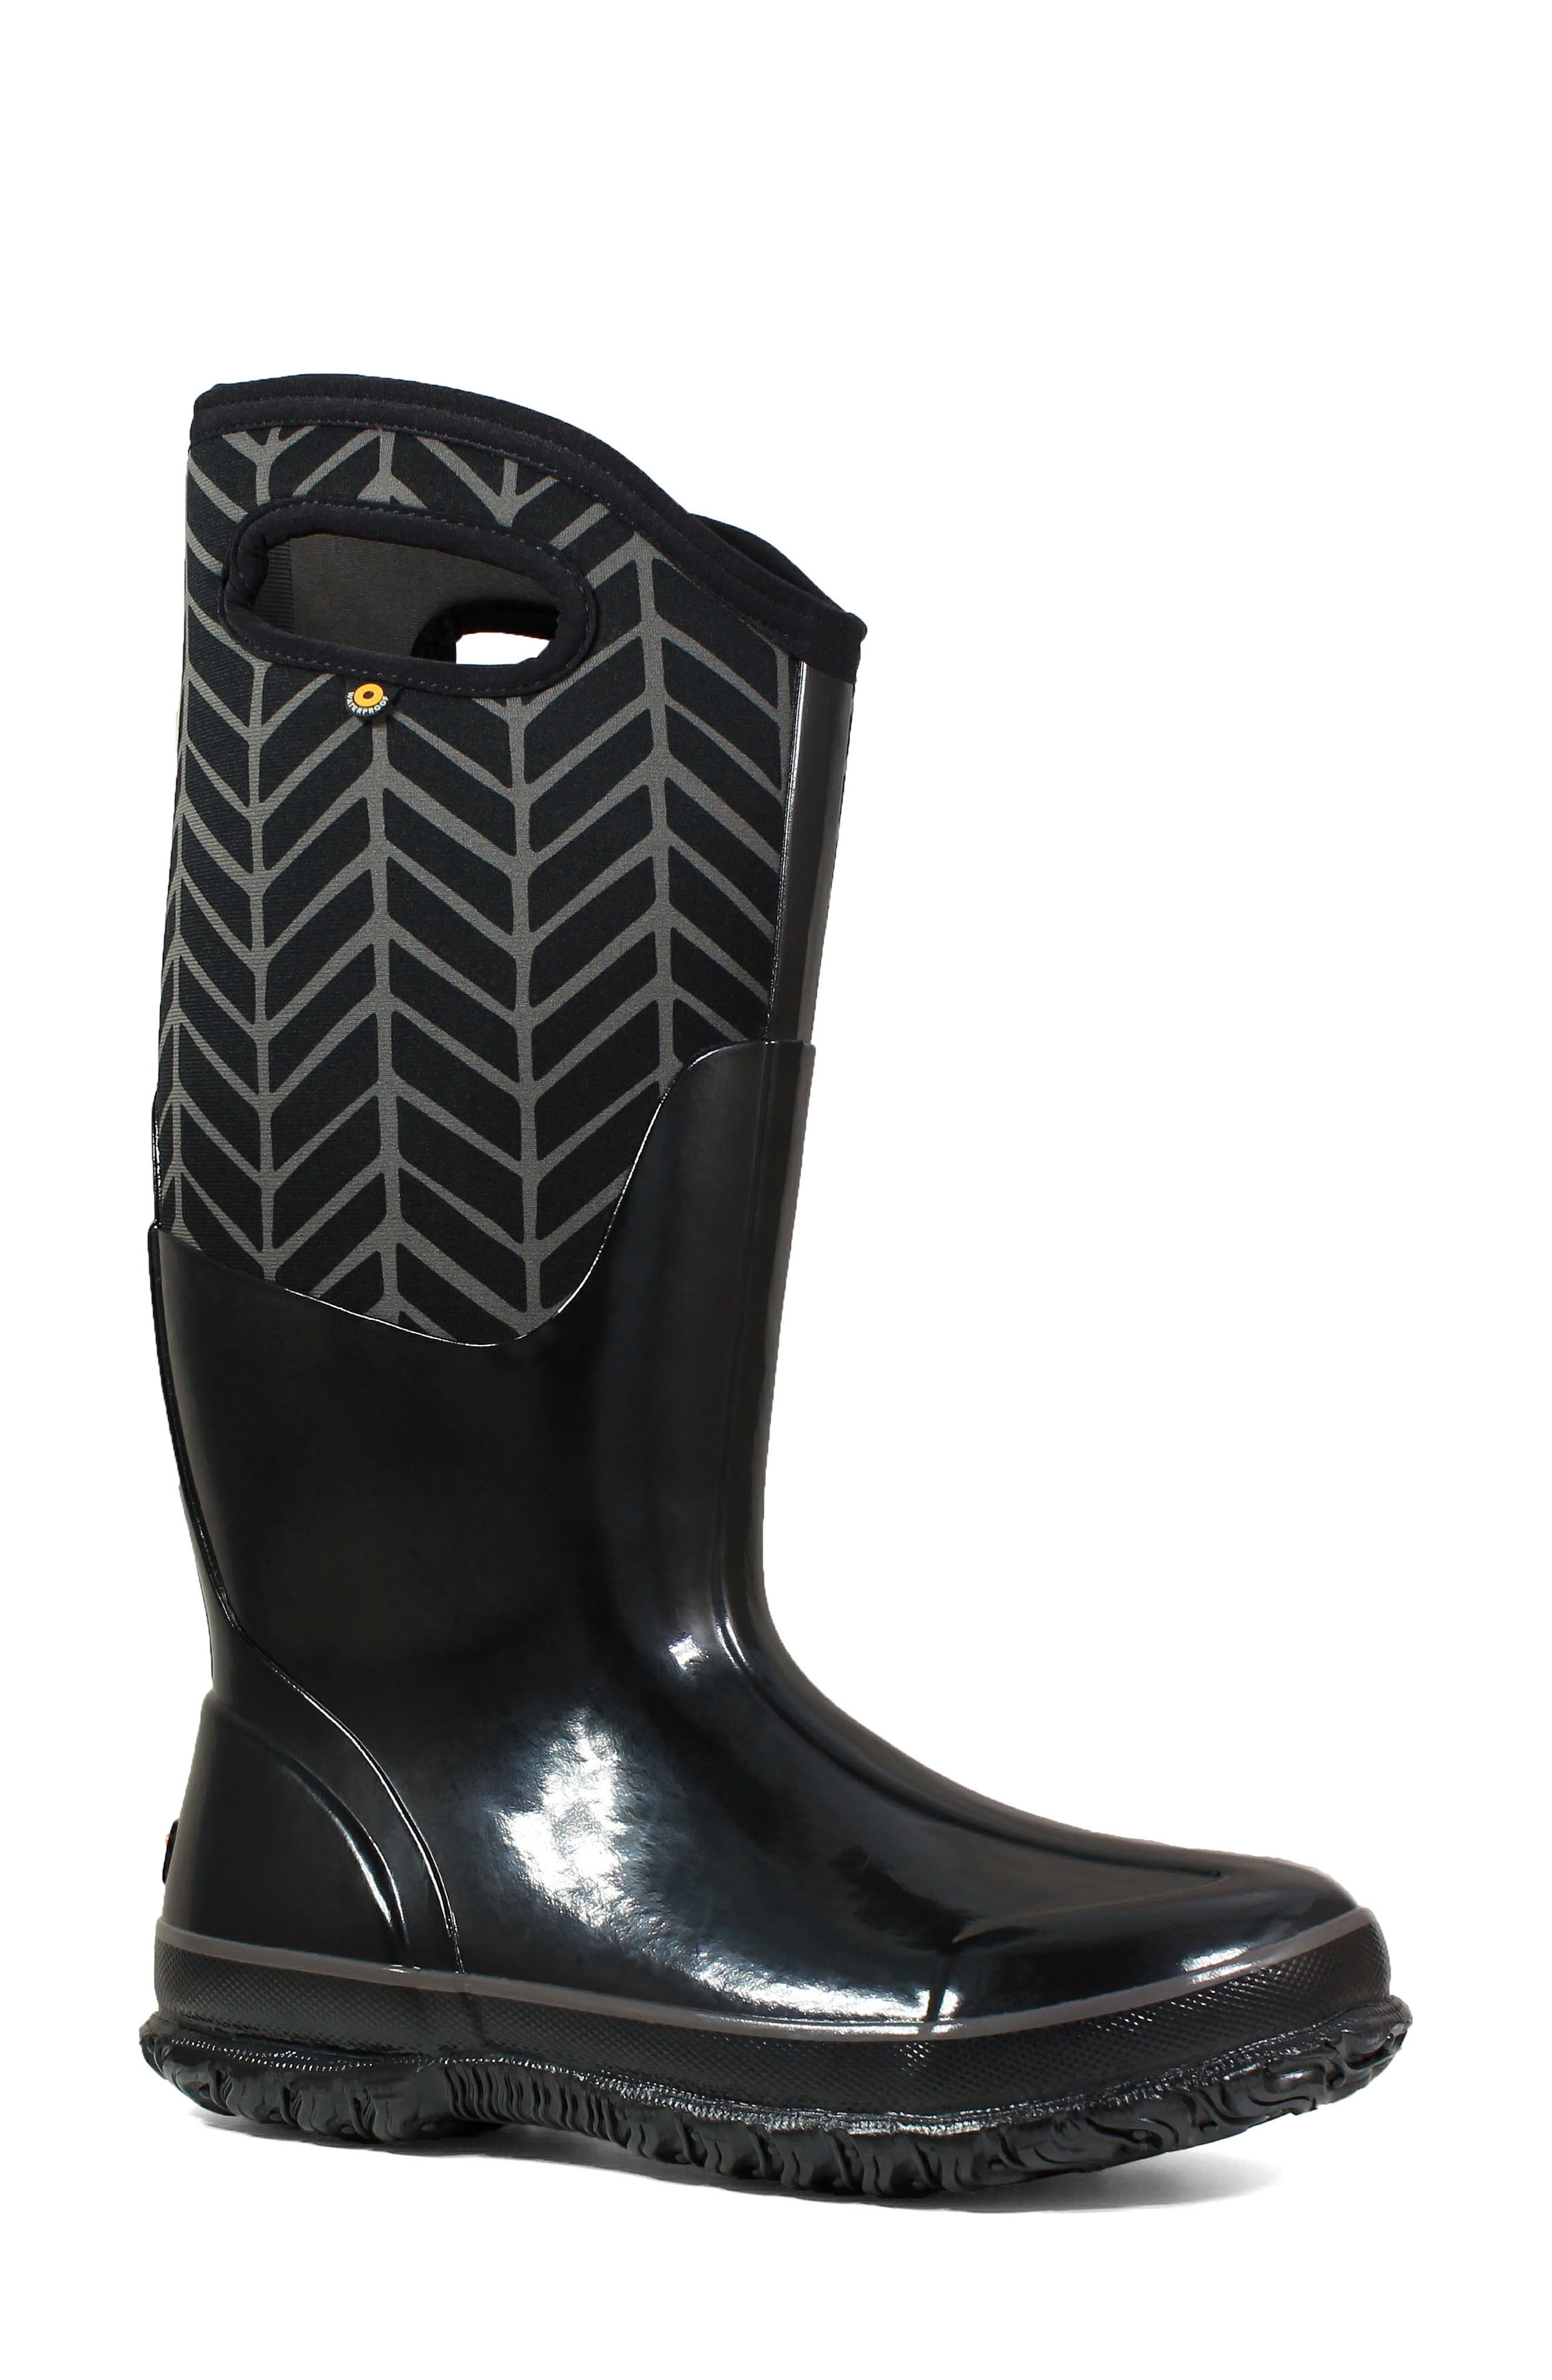 BOGS Classic Tall Badge Waterproof Snow Boot, Main, color, 009